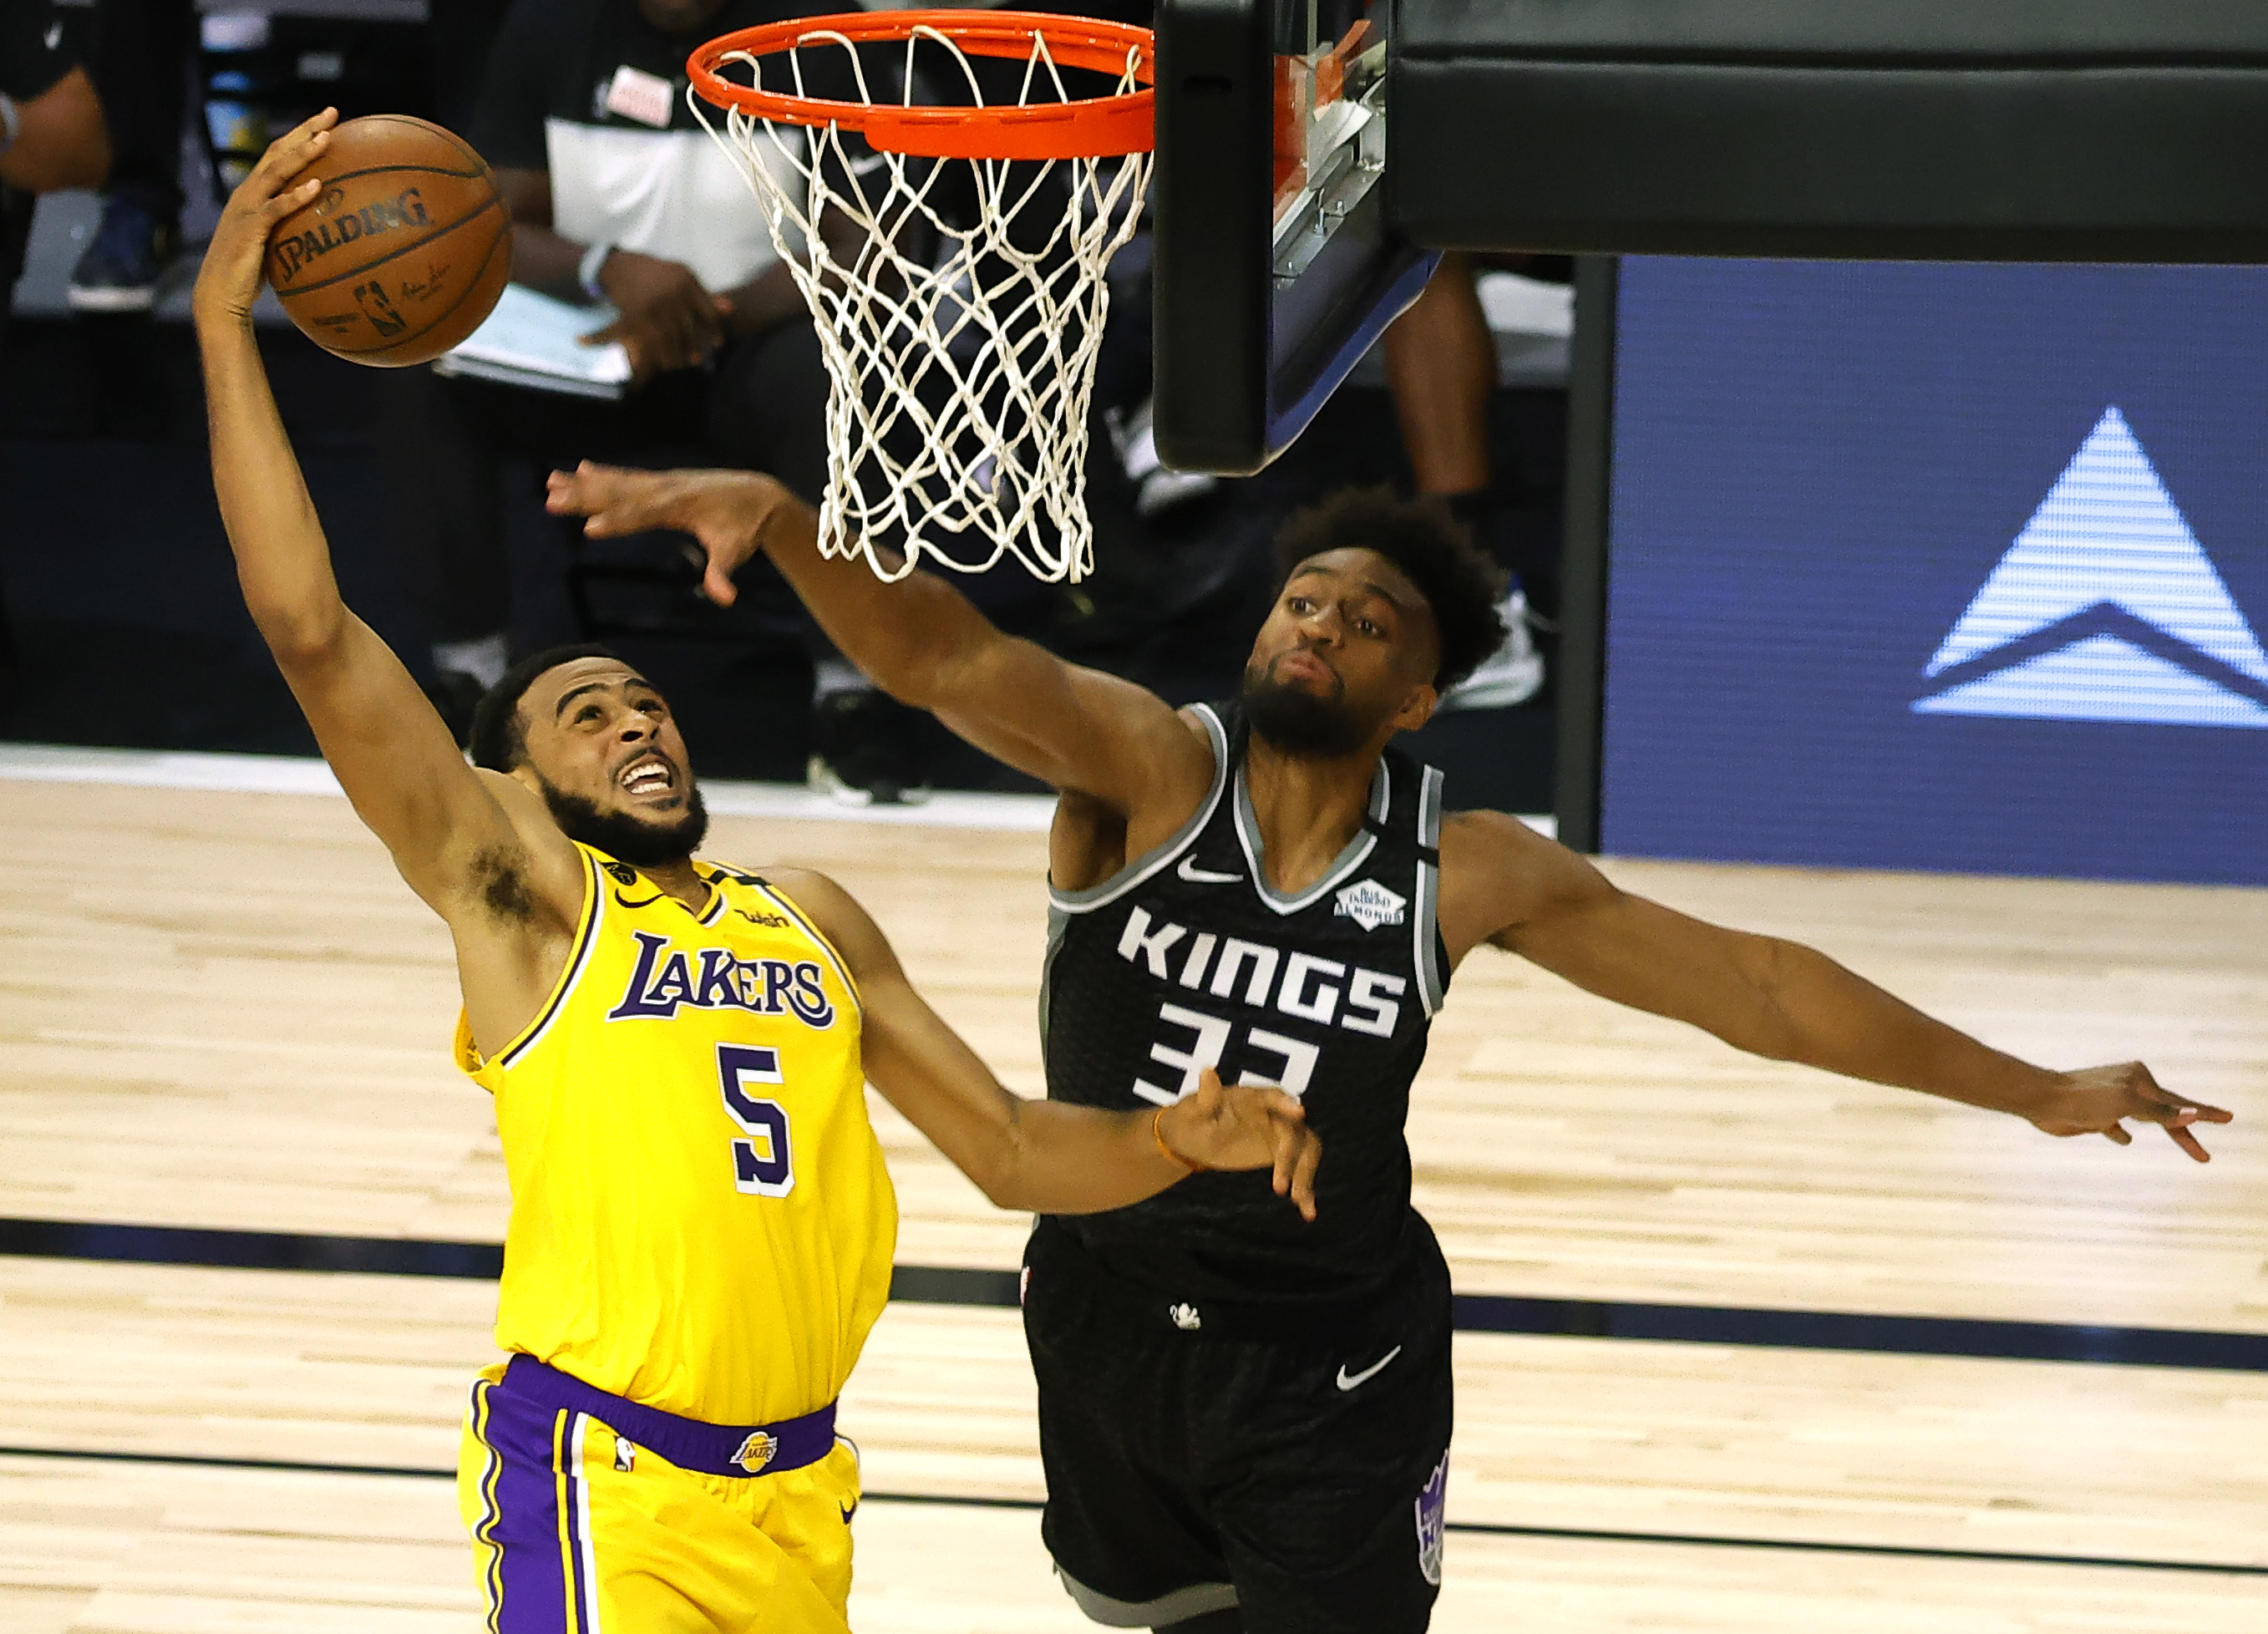 Betting odds list Clippers, Lakers, Bucks as favorites to win NBA Championship